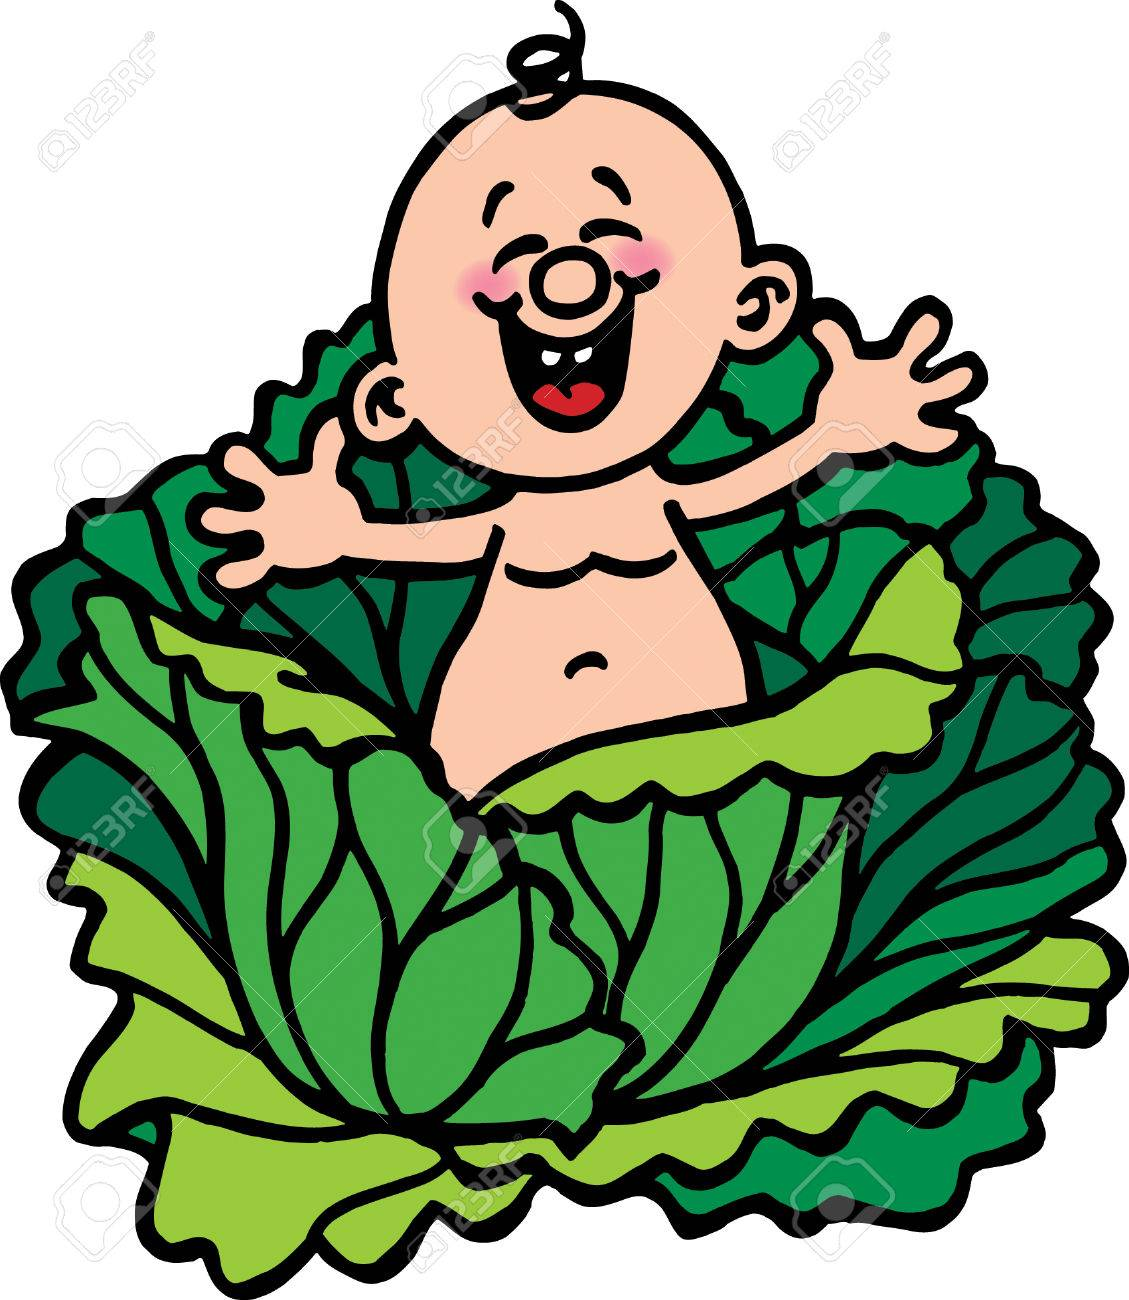 Cabbage Patch.